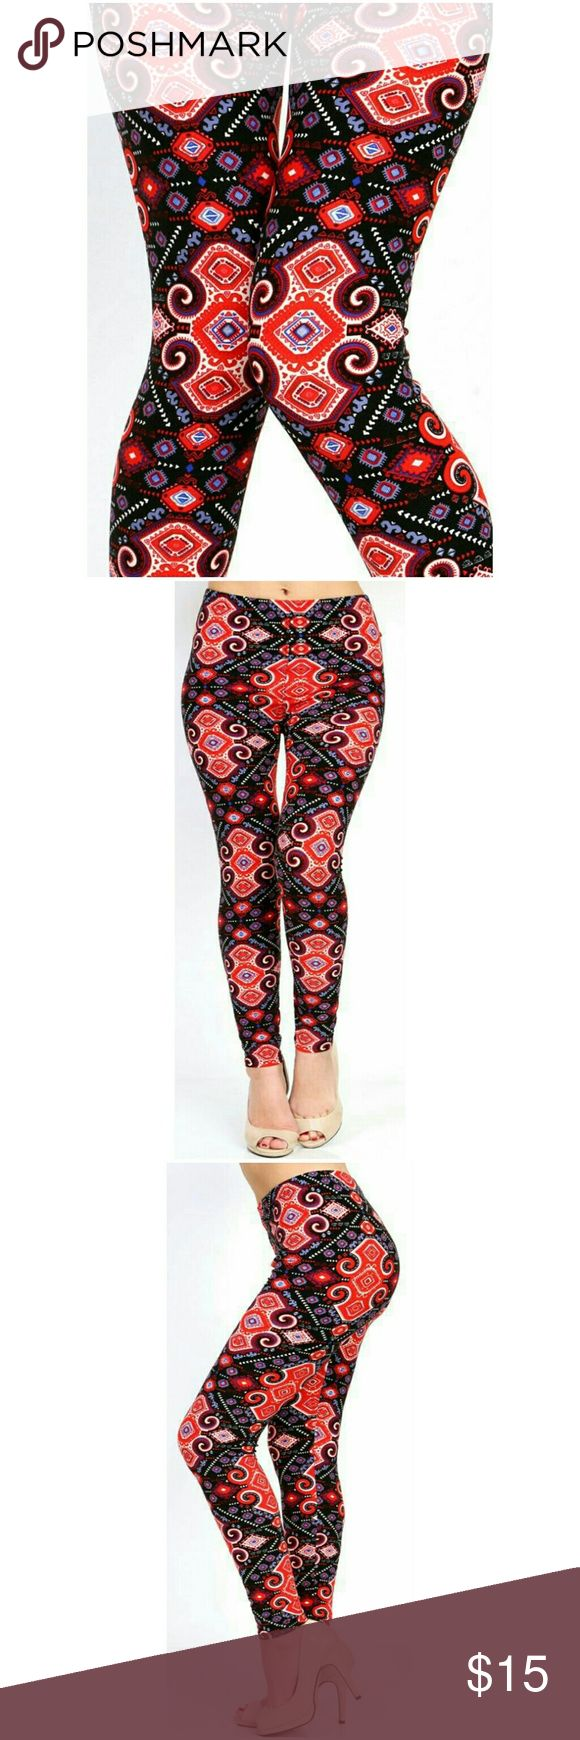 "Coming Soon (Plus) Curvy Tribal Print Leggings Peachskin print full leggings. Tribal black and Fred abstract  print. Highwaisted with 1"" Wide elastic waistband. Very soft. Great to wear dressed up with heels or casual with tennies. New in package. L 37"" I 27"" R 10. Fits XL to 2X (14-22) comfortably. One size BohoBeauRoseBoutique Pants Leggings"